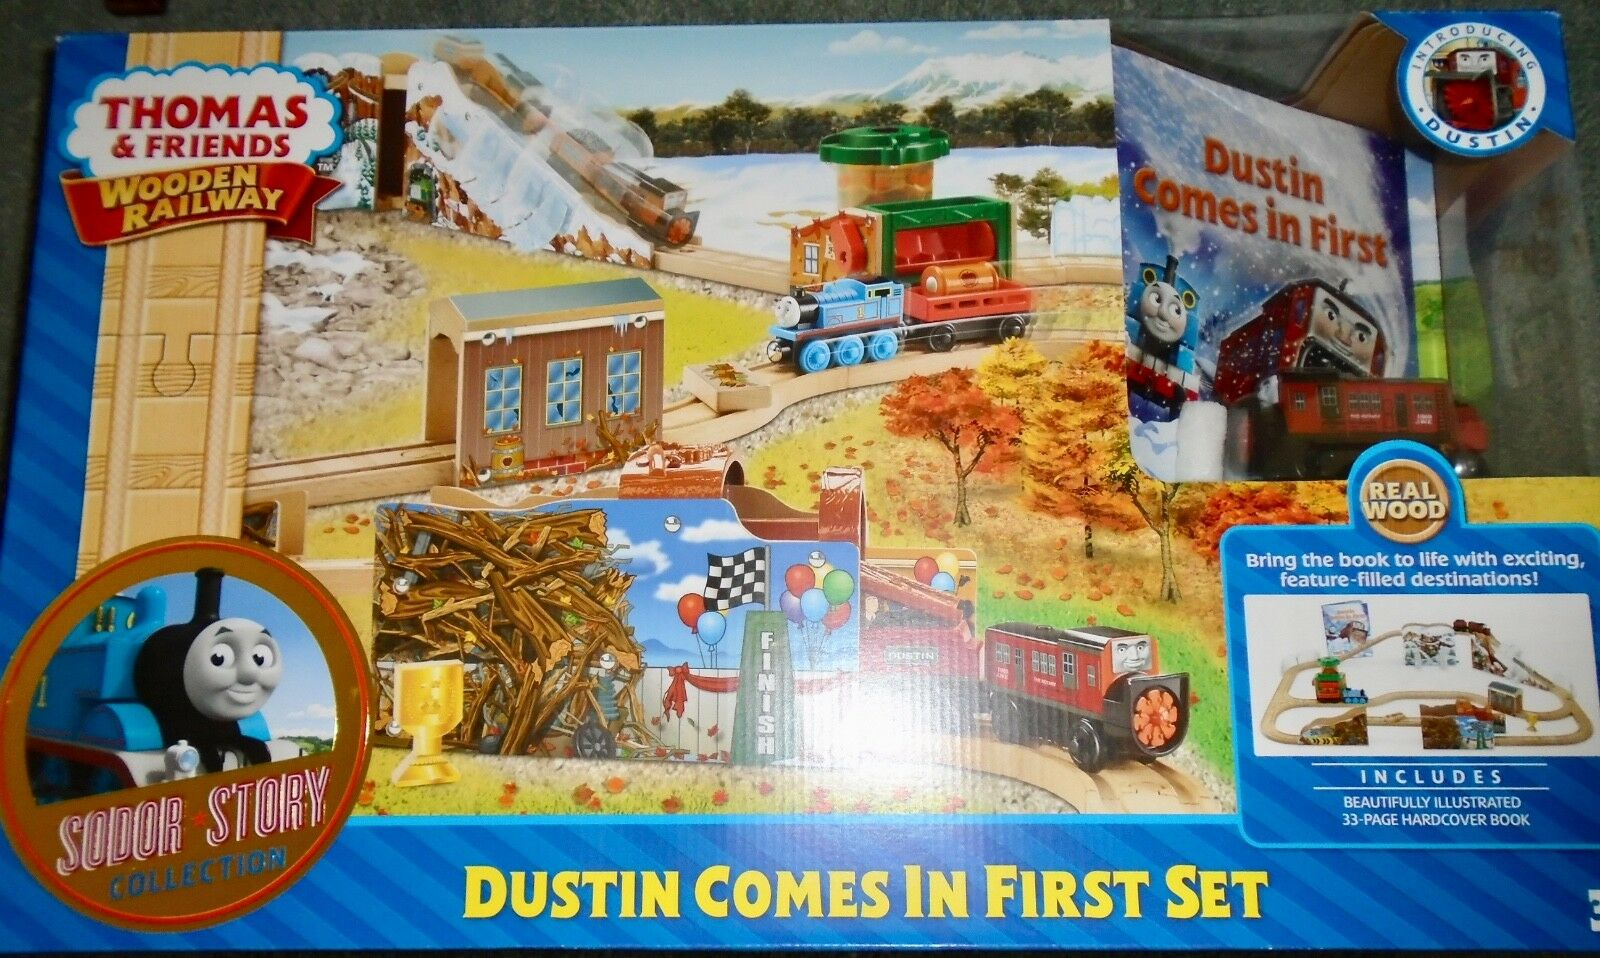 NEW  FISHER  PRICE  THOMAS  &  FRIENDS  DUSTIN  COMES  IN  FIRST  WOODEN  SET